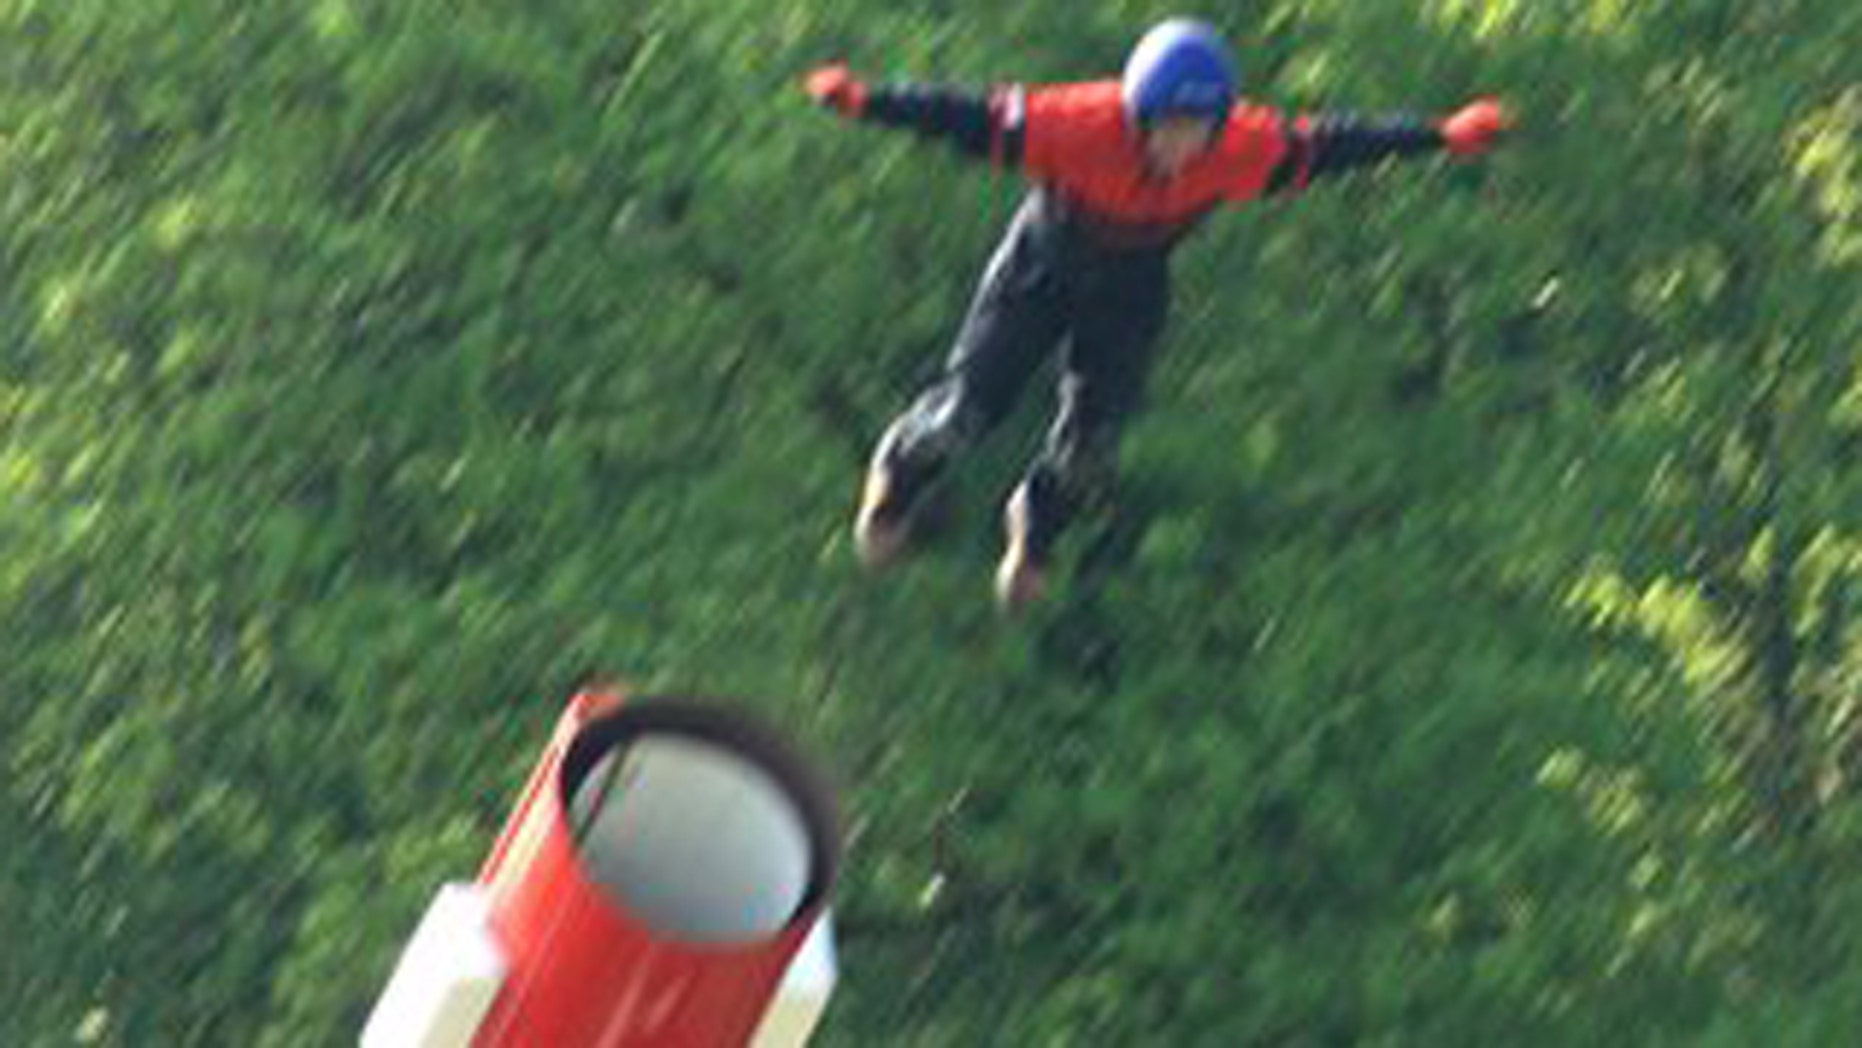 April 25: A human cannonball  is propelled from the barrel moments before he died after a safety net failed during the stunt at the Kent County Showground in Detling, south eastern England